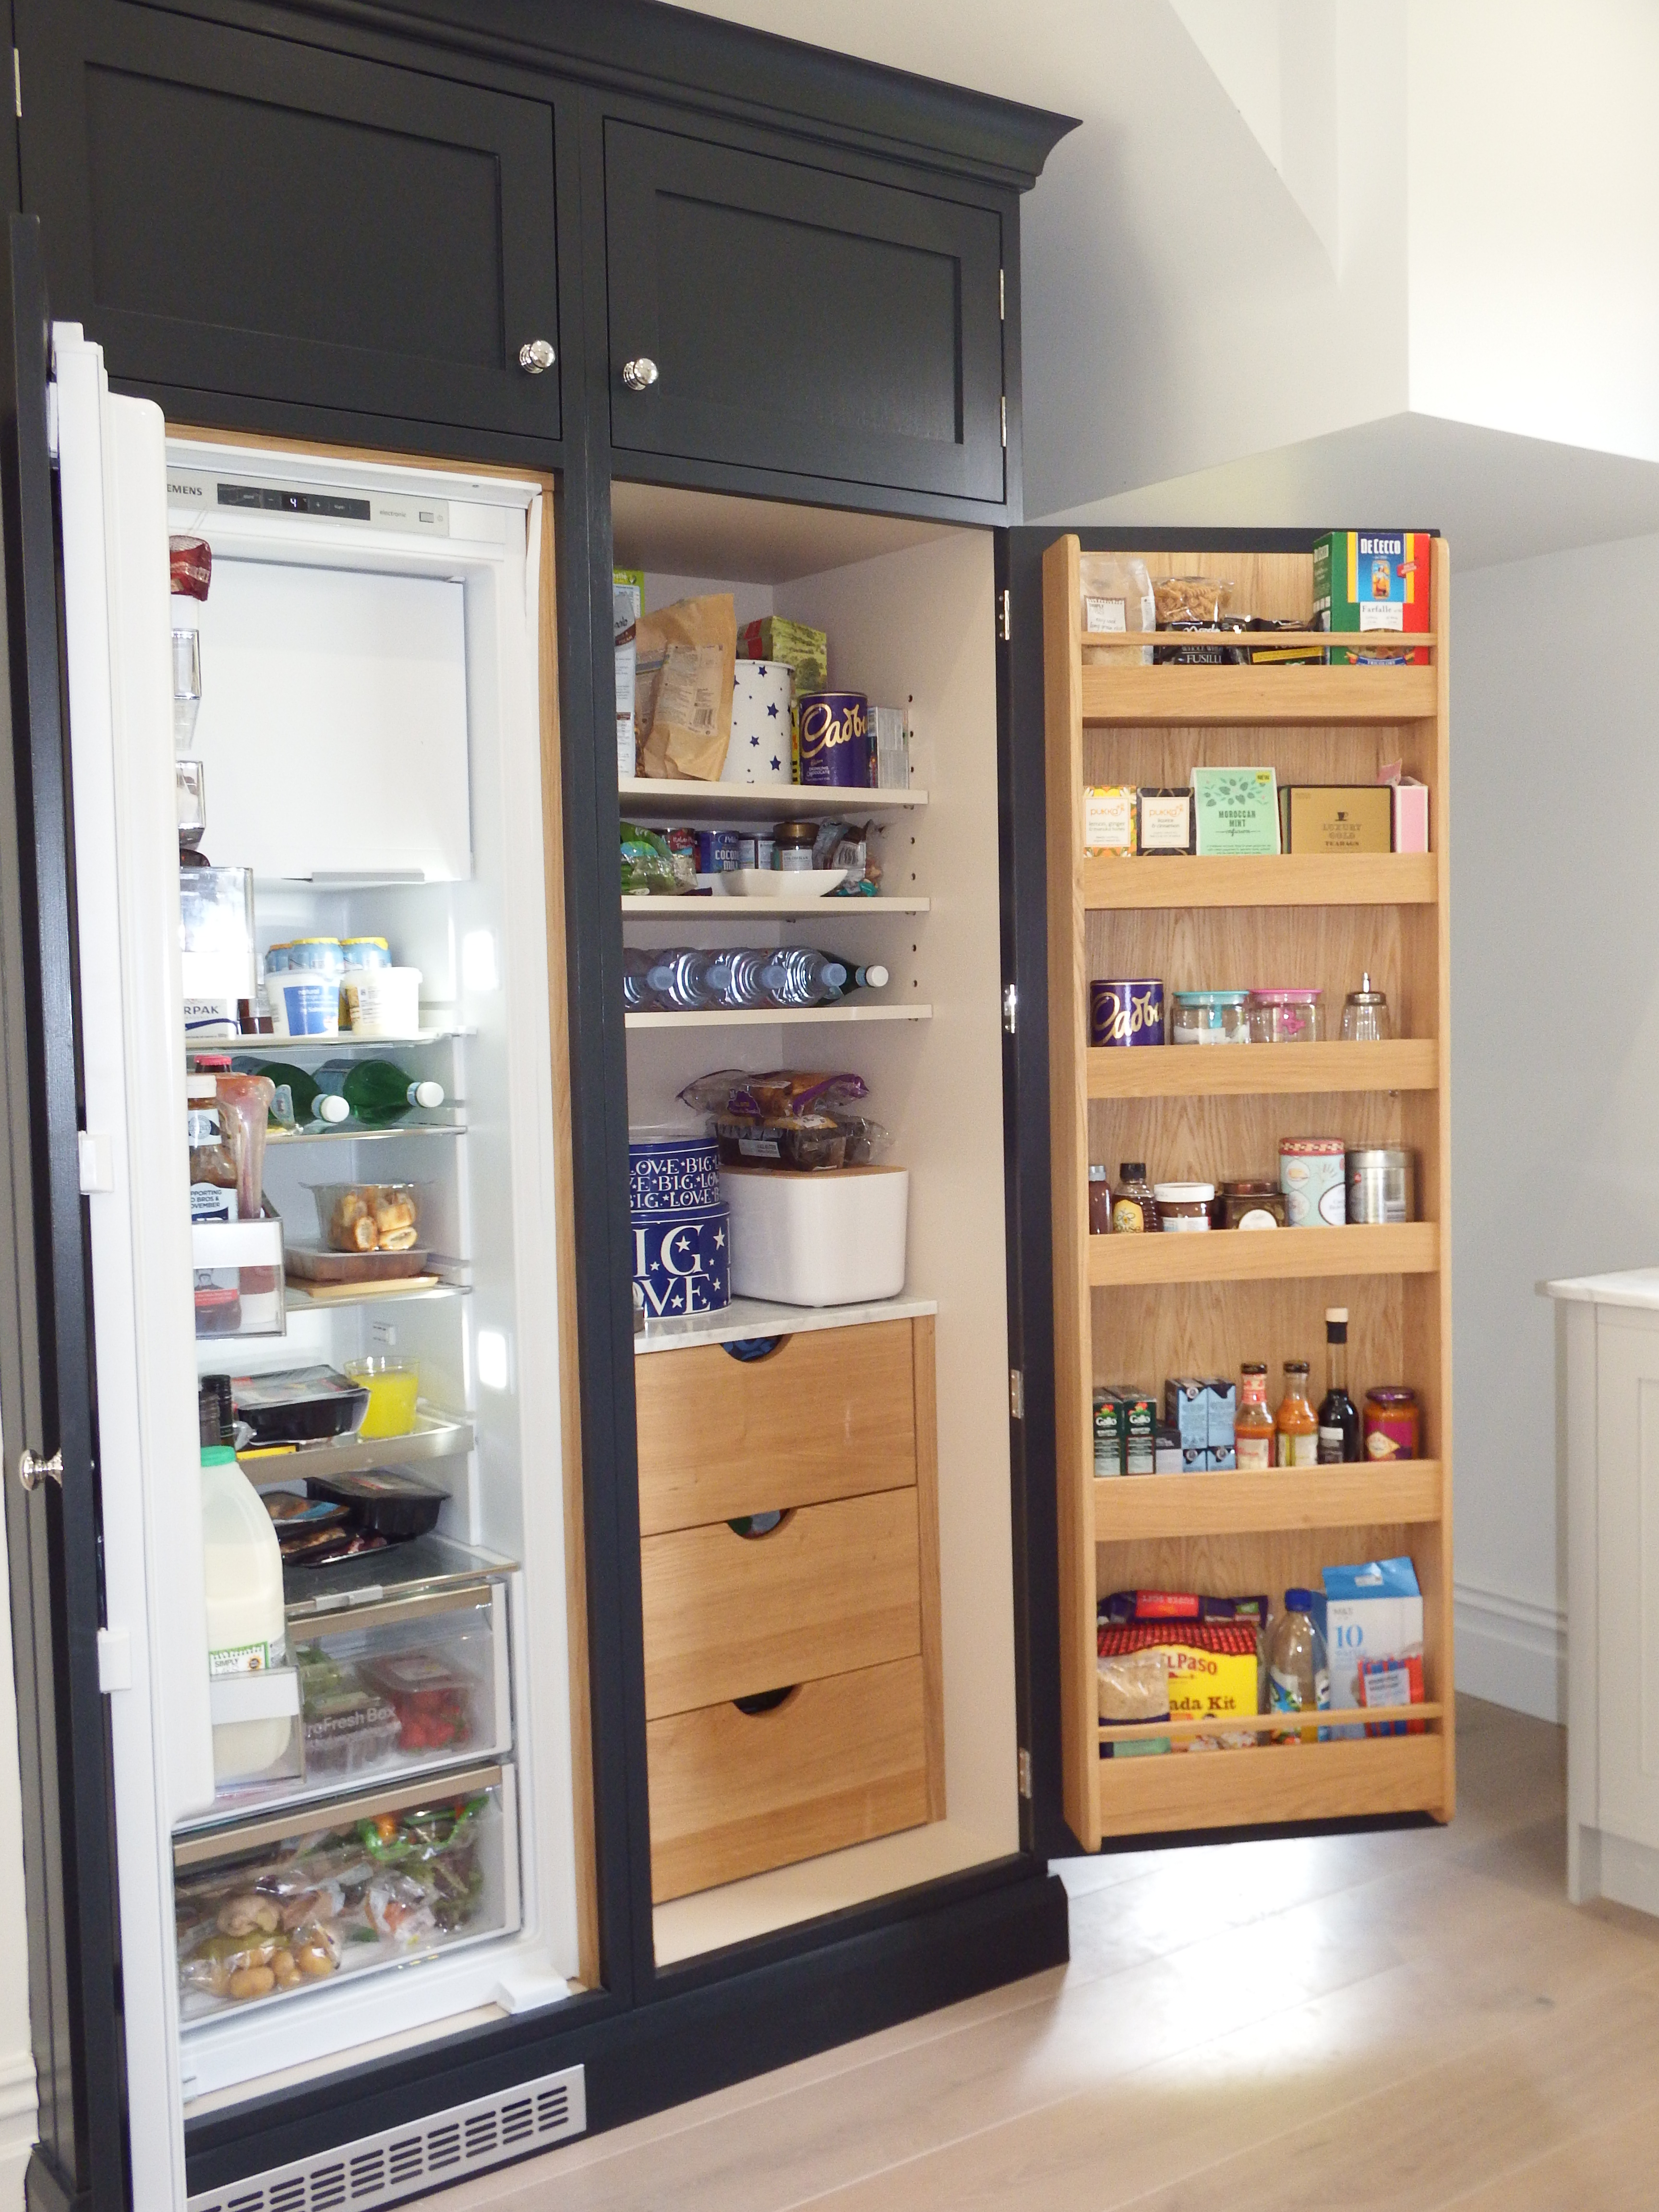 Pantry Cabinet Making A Pantry Cabinet With Hometalk How